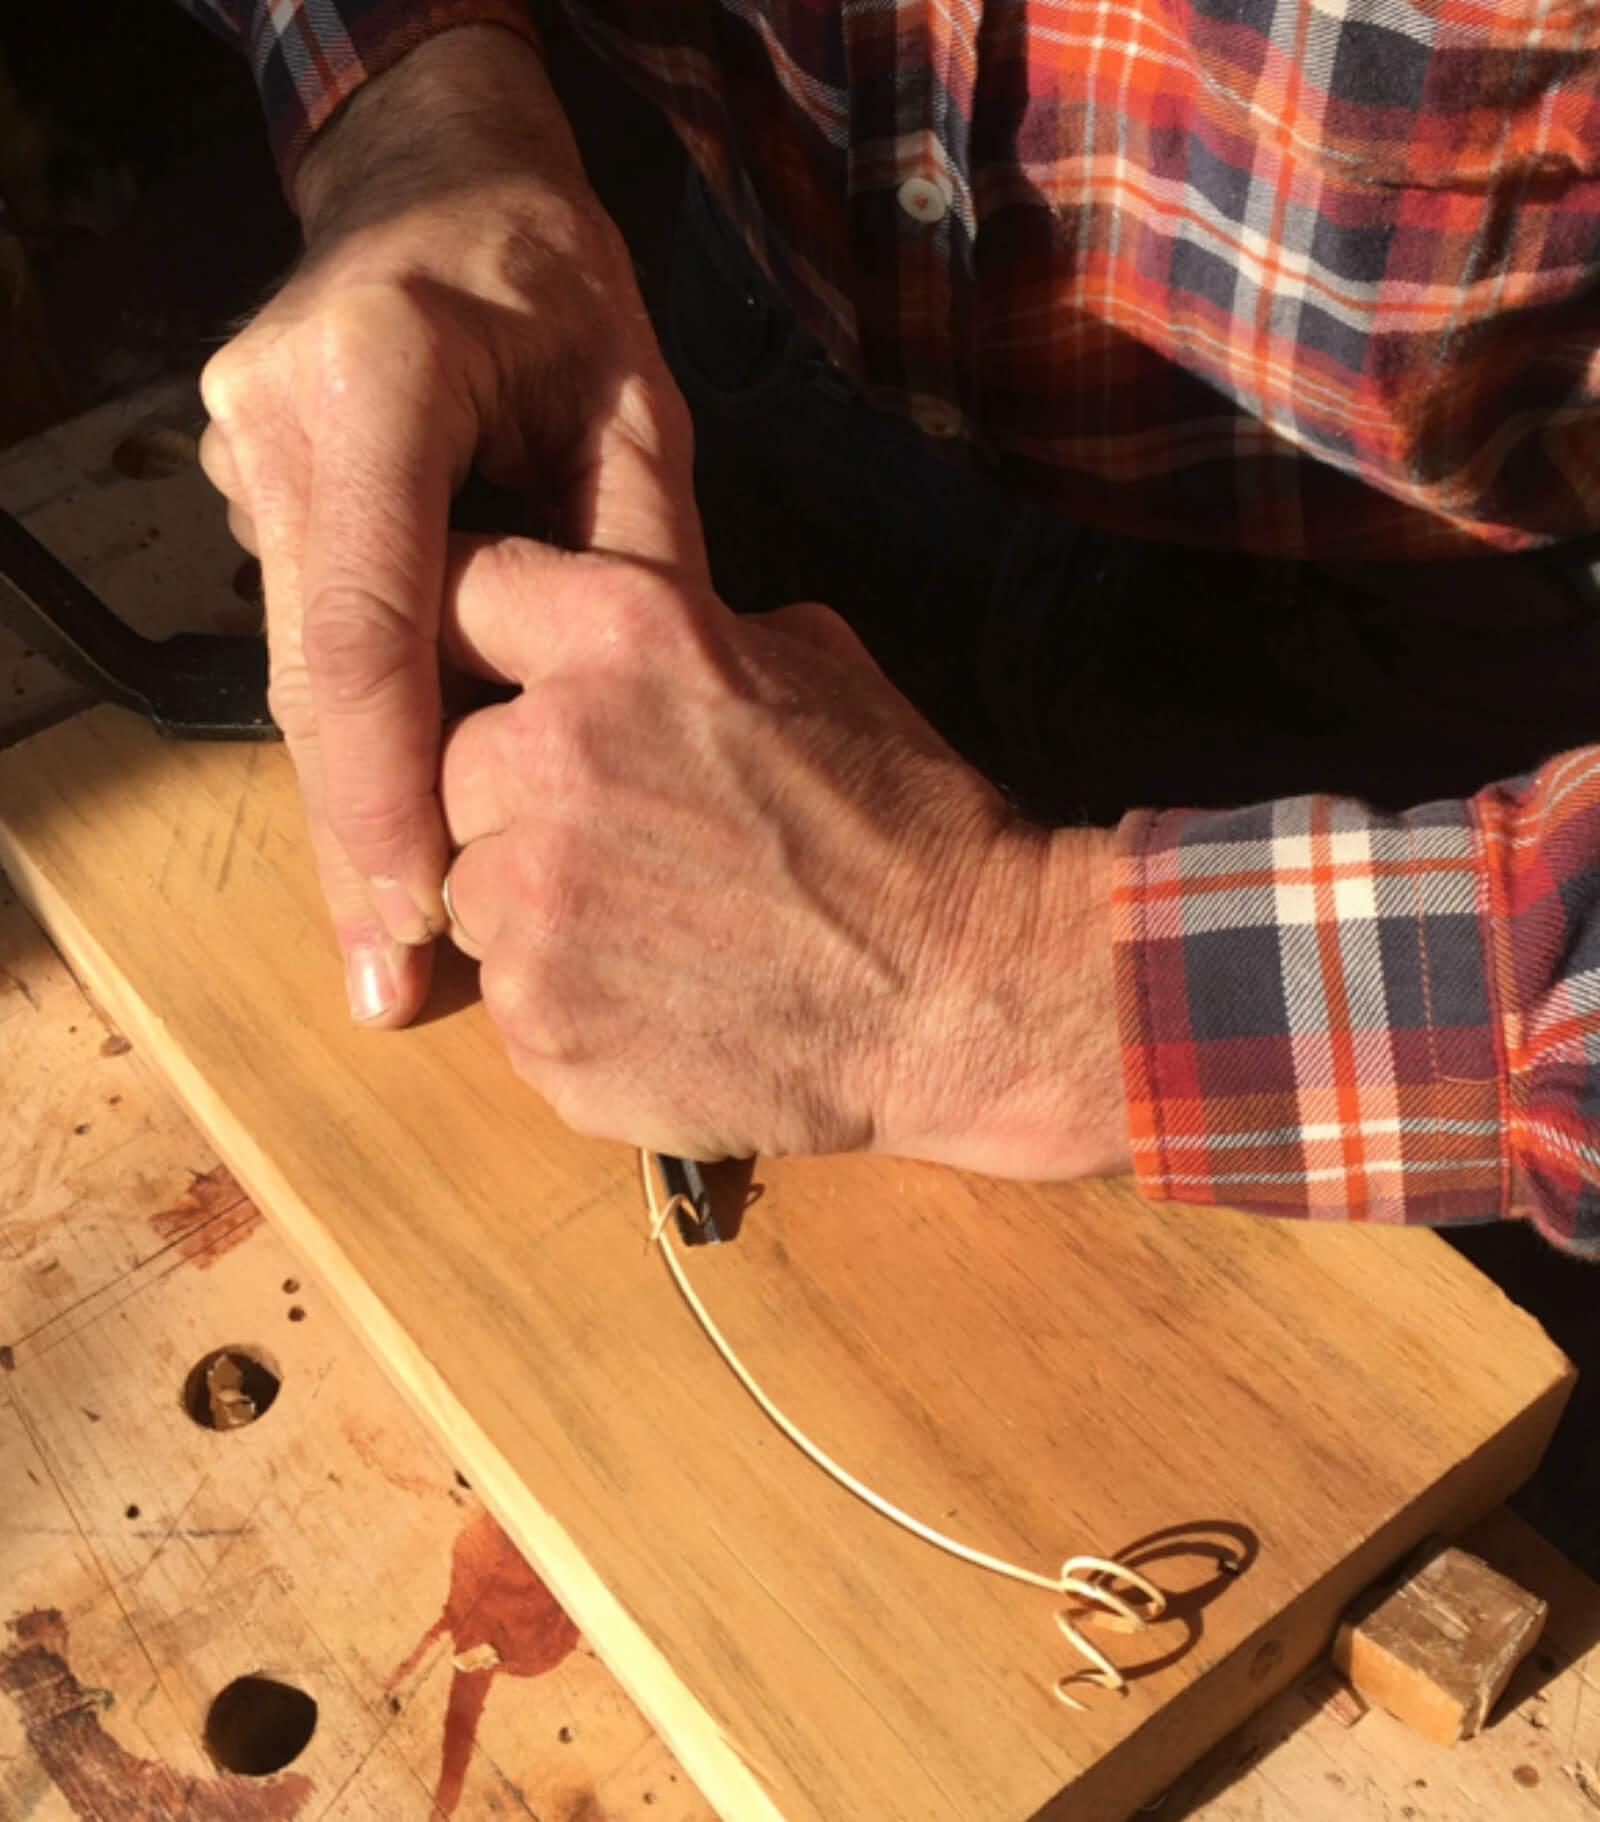 How to hold a carving tool